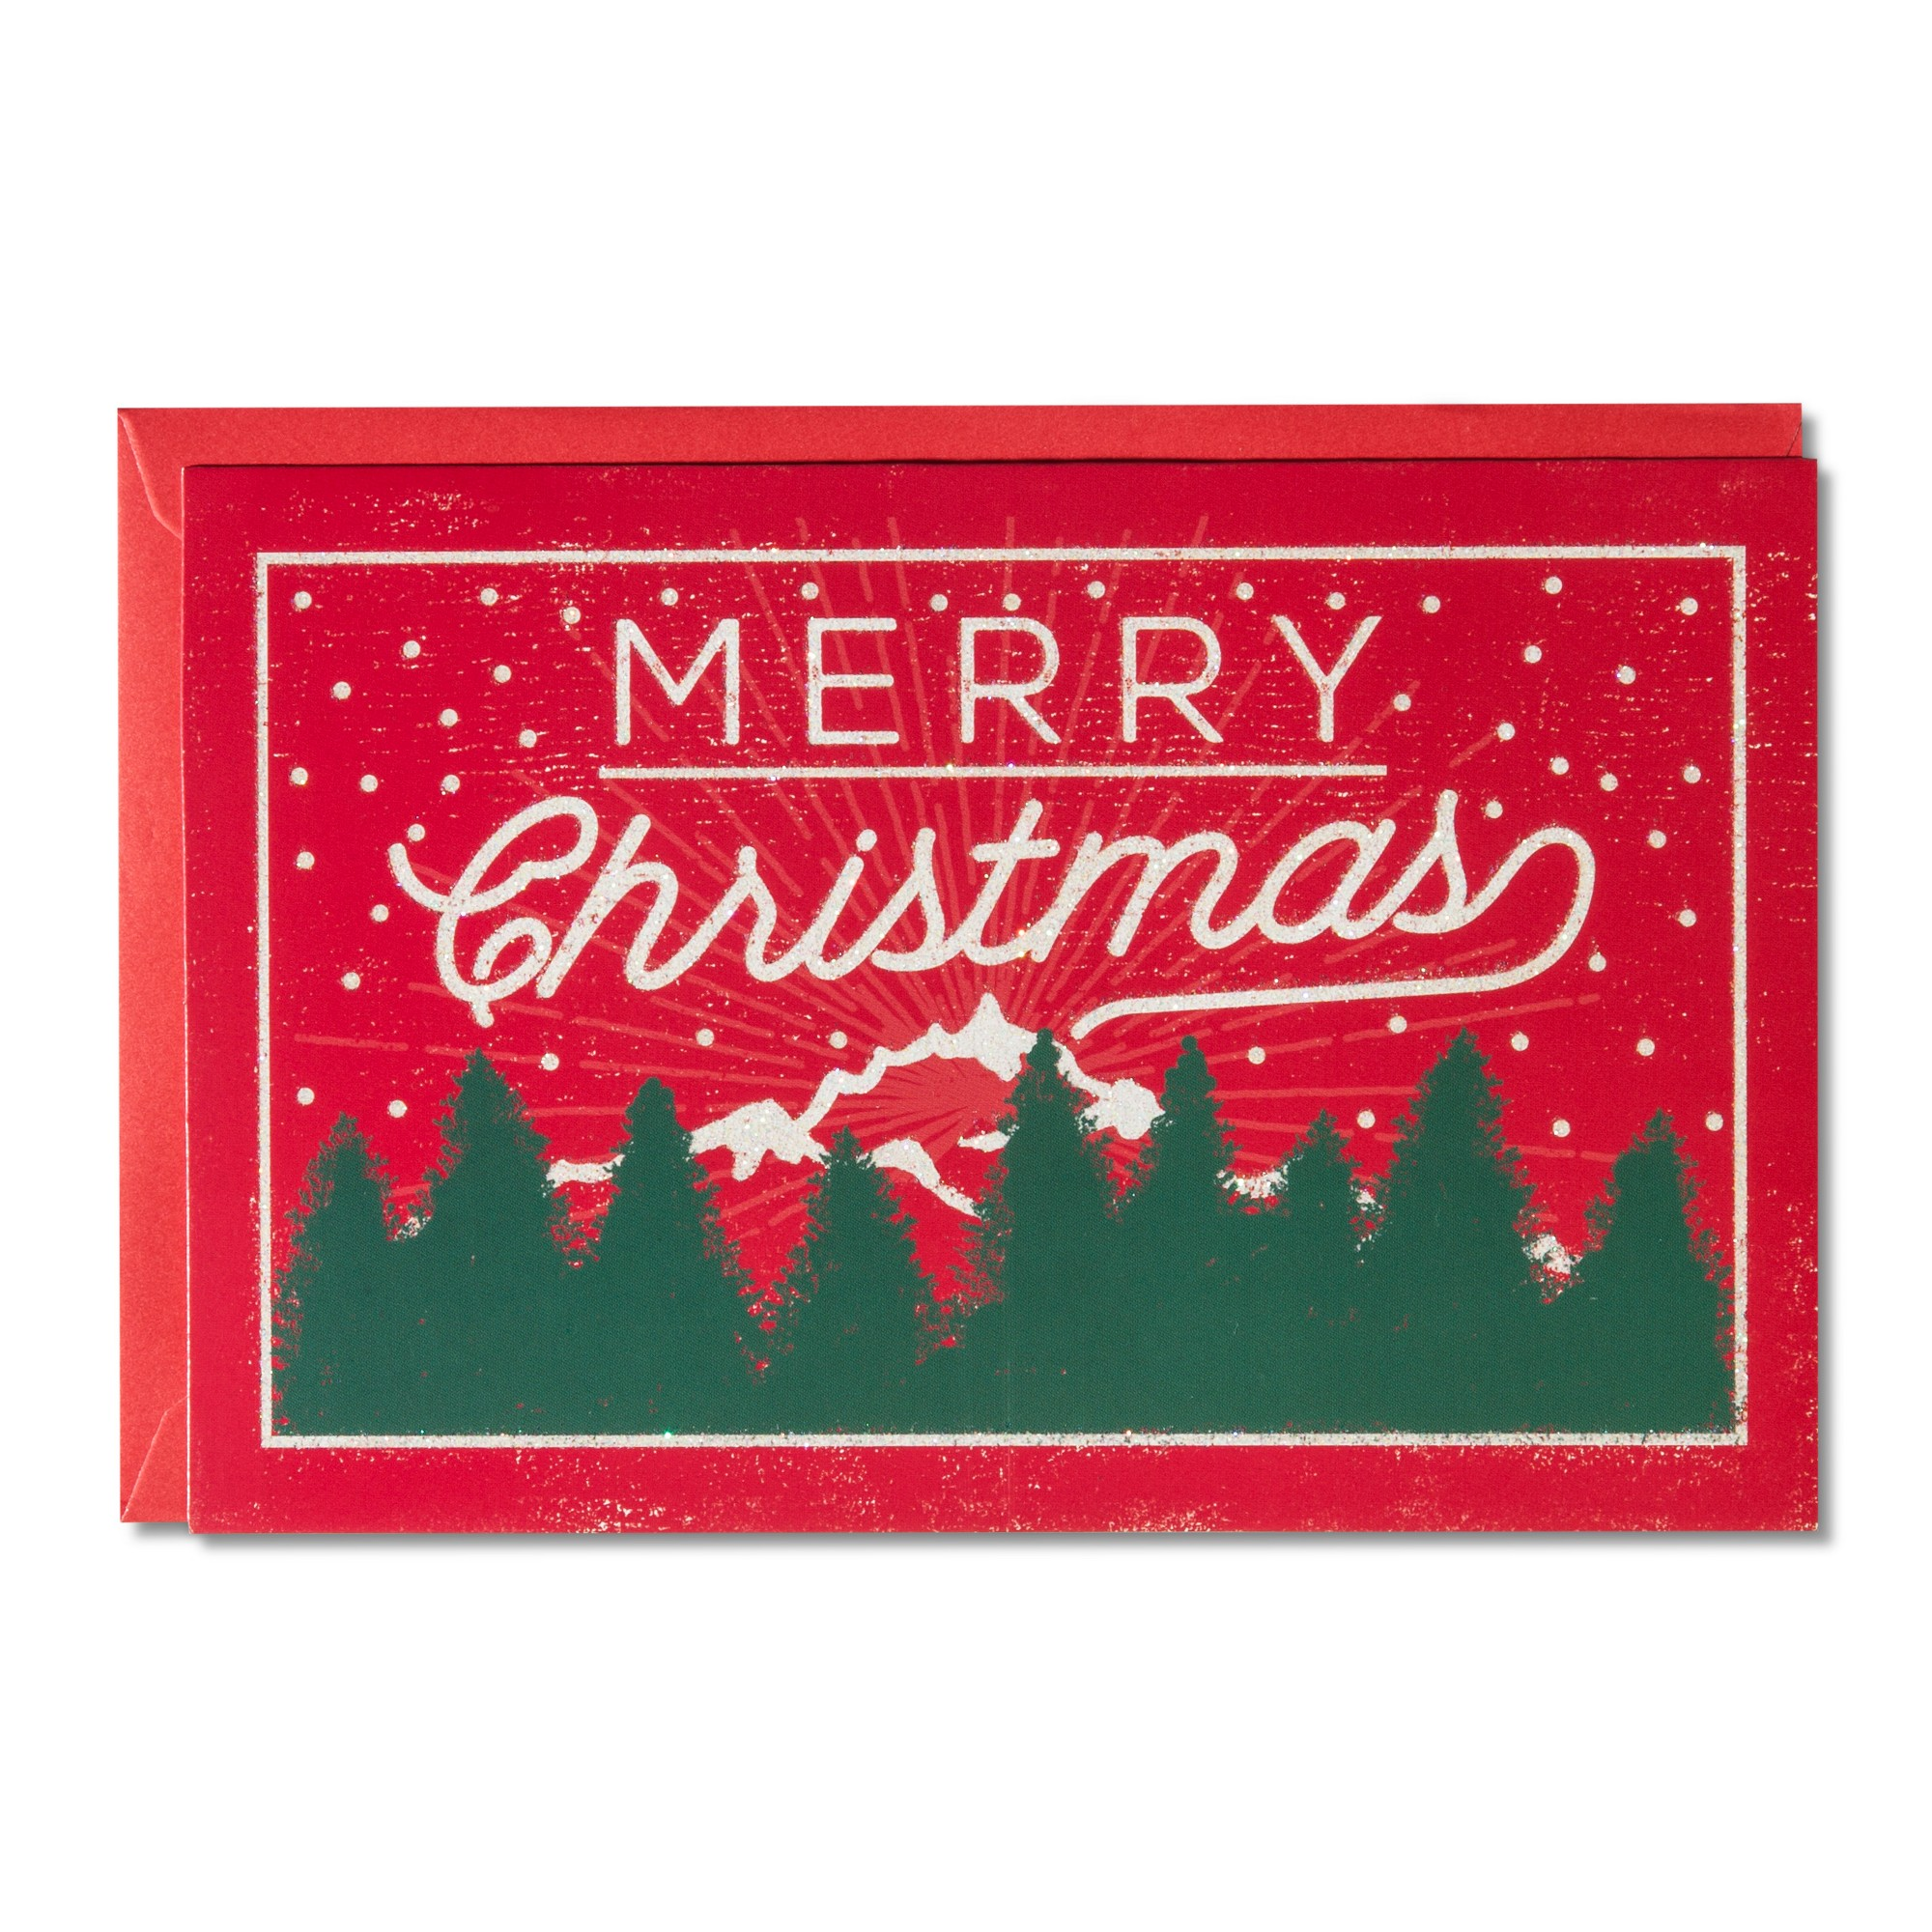 American greetings 14ct merry christmas holiday boxed cards american greetings 14ct merry christmas holiday boxed cards m4hsunfo